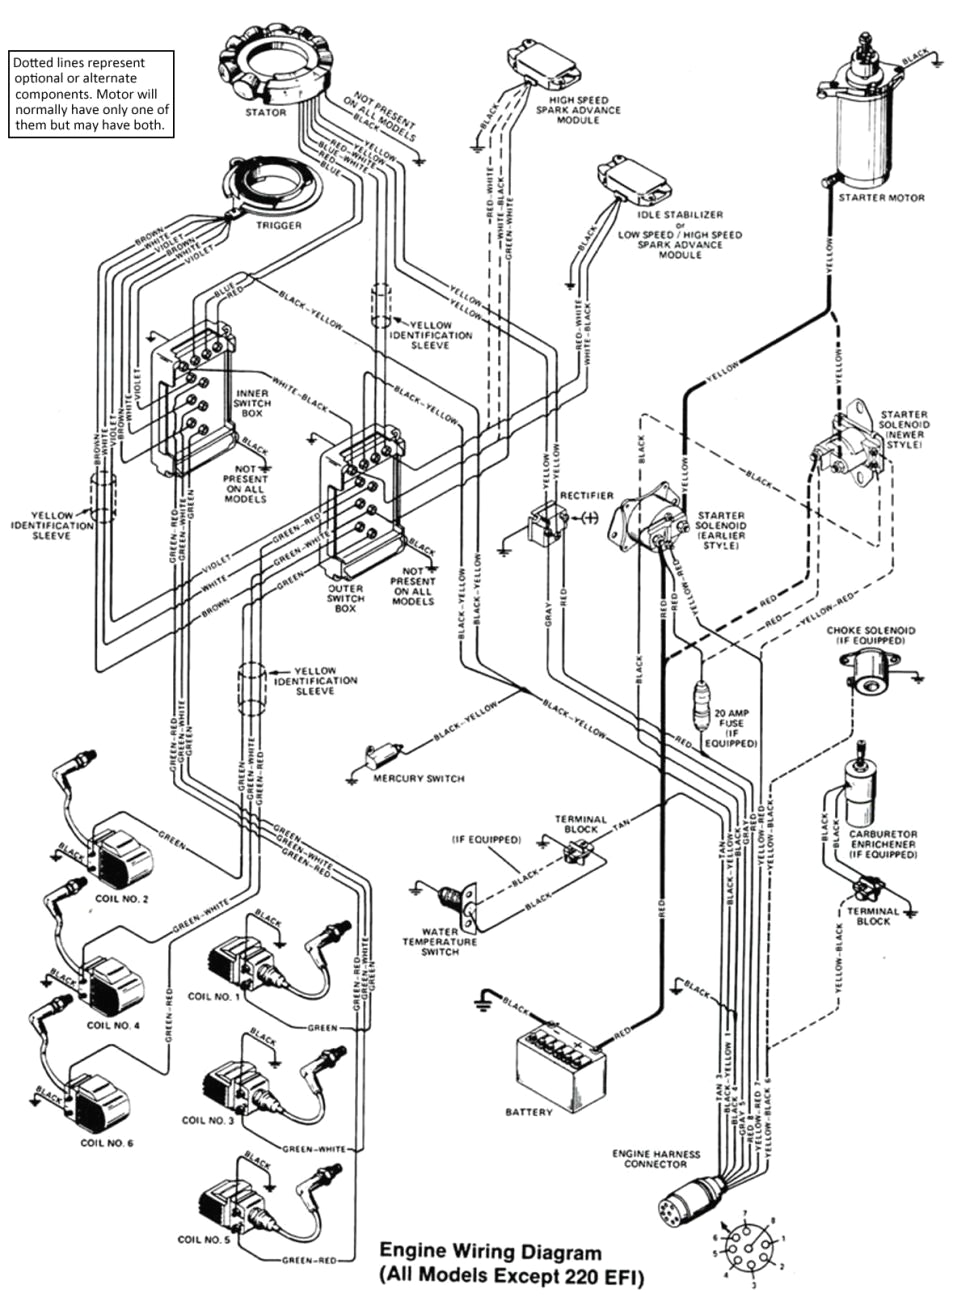 Electric Circuit Drawing At Free For Personal Use Electronic Wiring Diagrams 970x1310 Schematics Photocell Starter